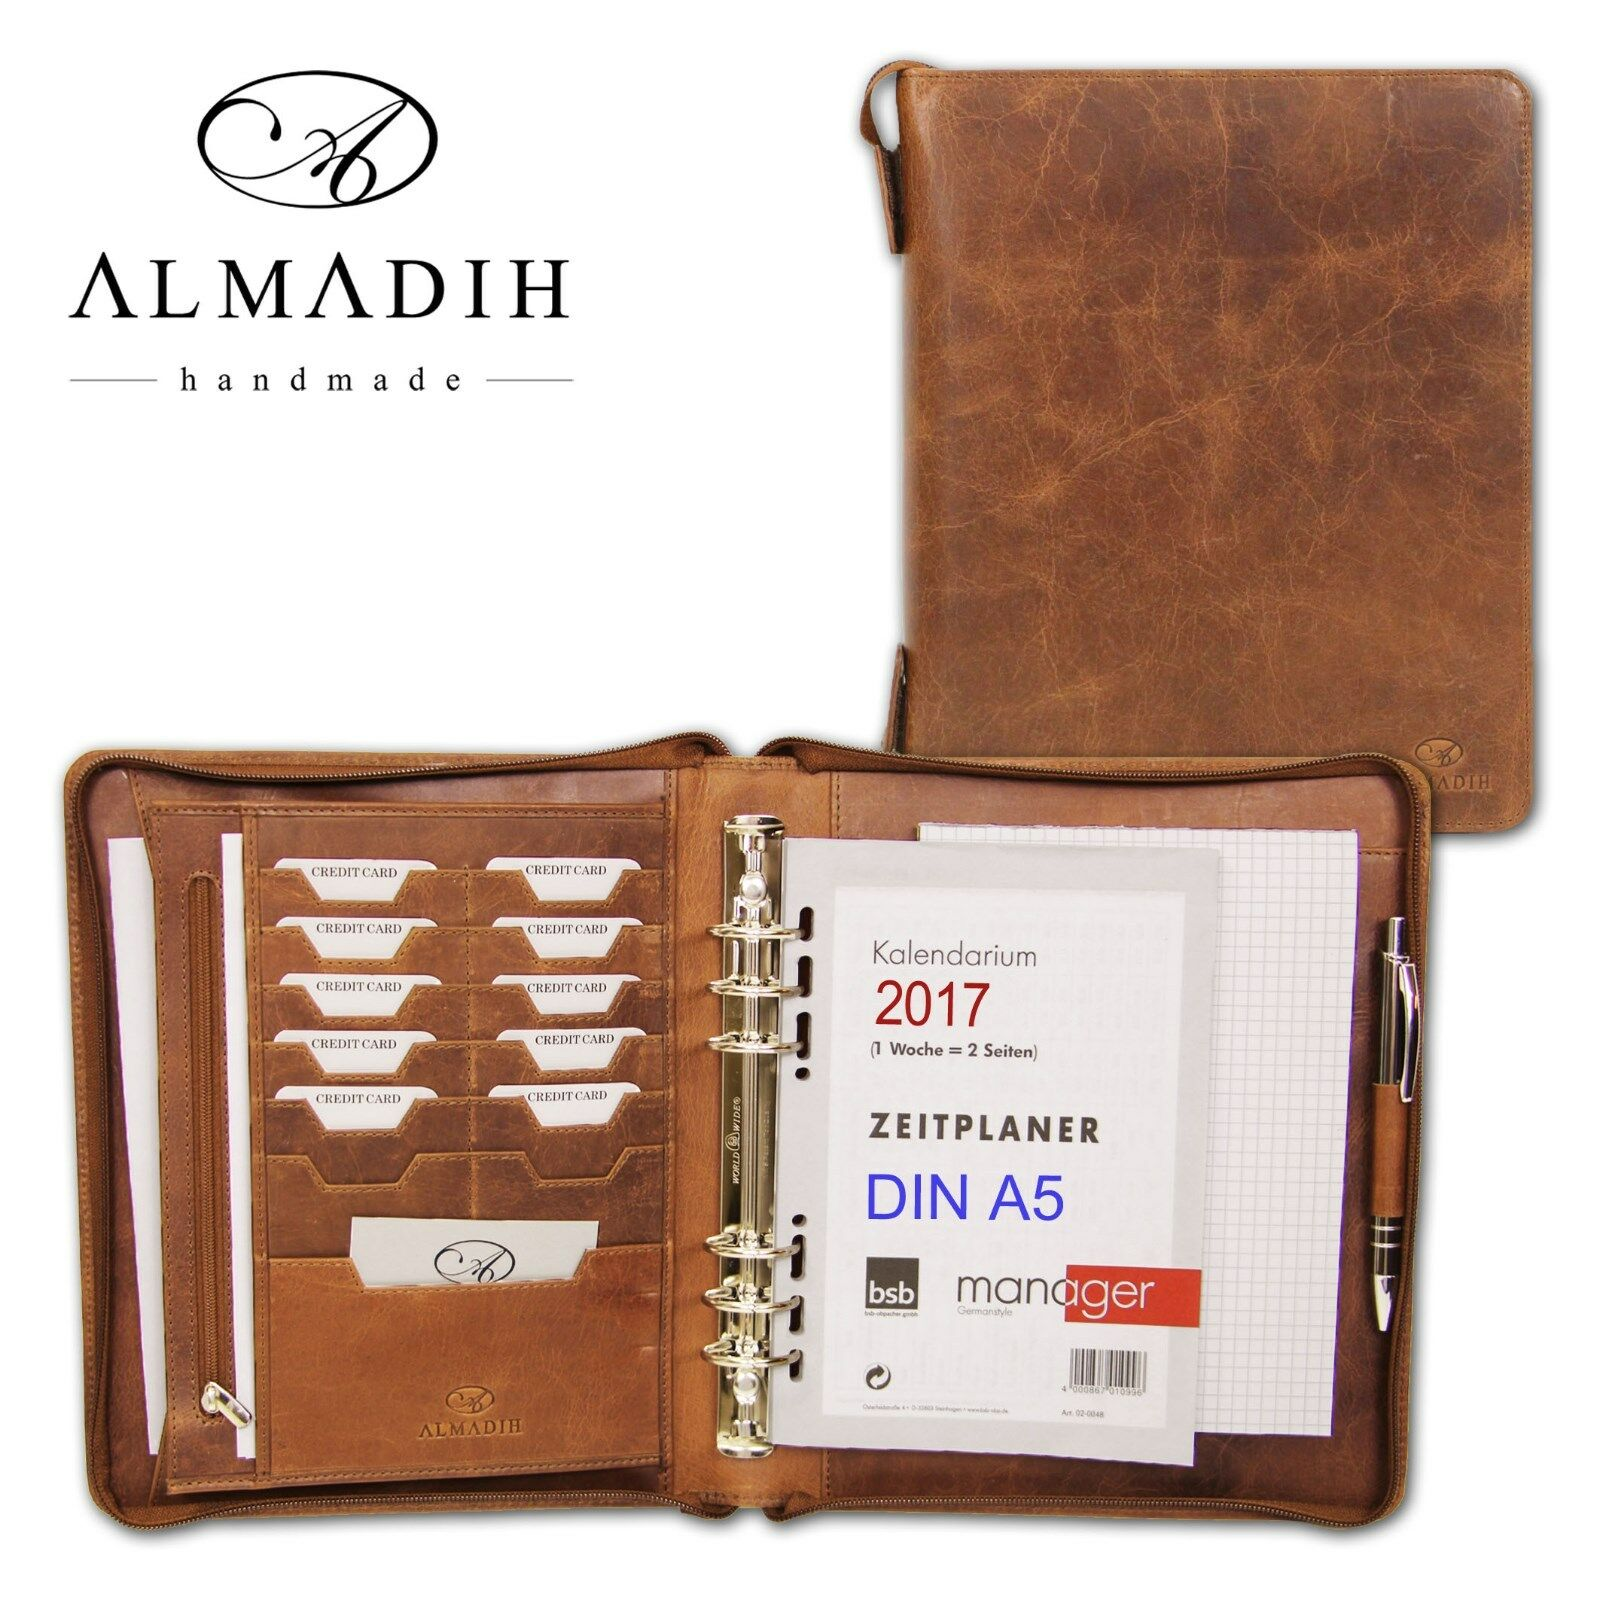 almadih leather organiser a5 zip personal organizer. Black Bedroom Furniture Sets. Home Design Ideas